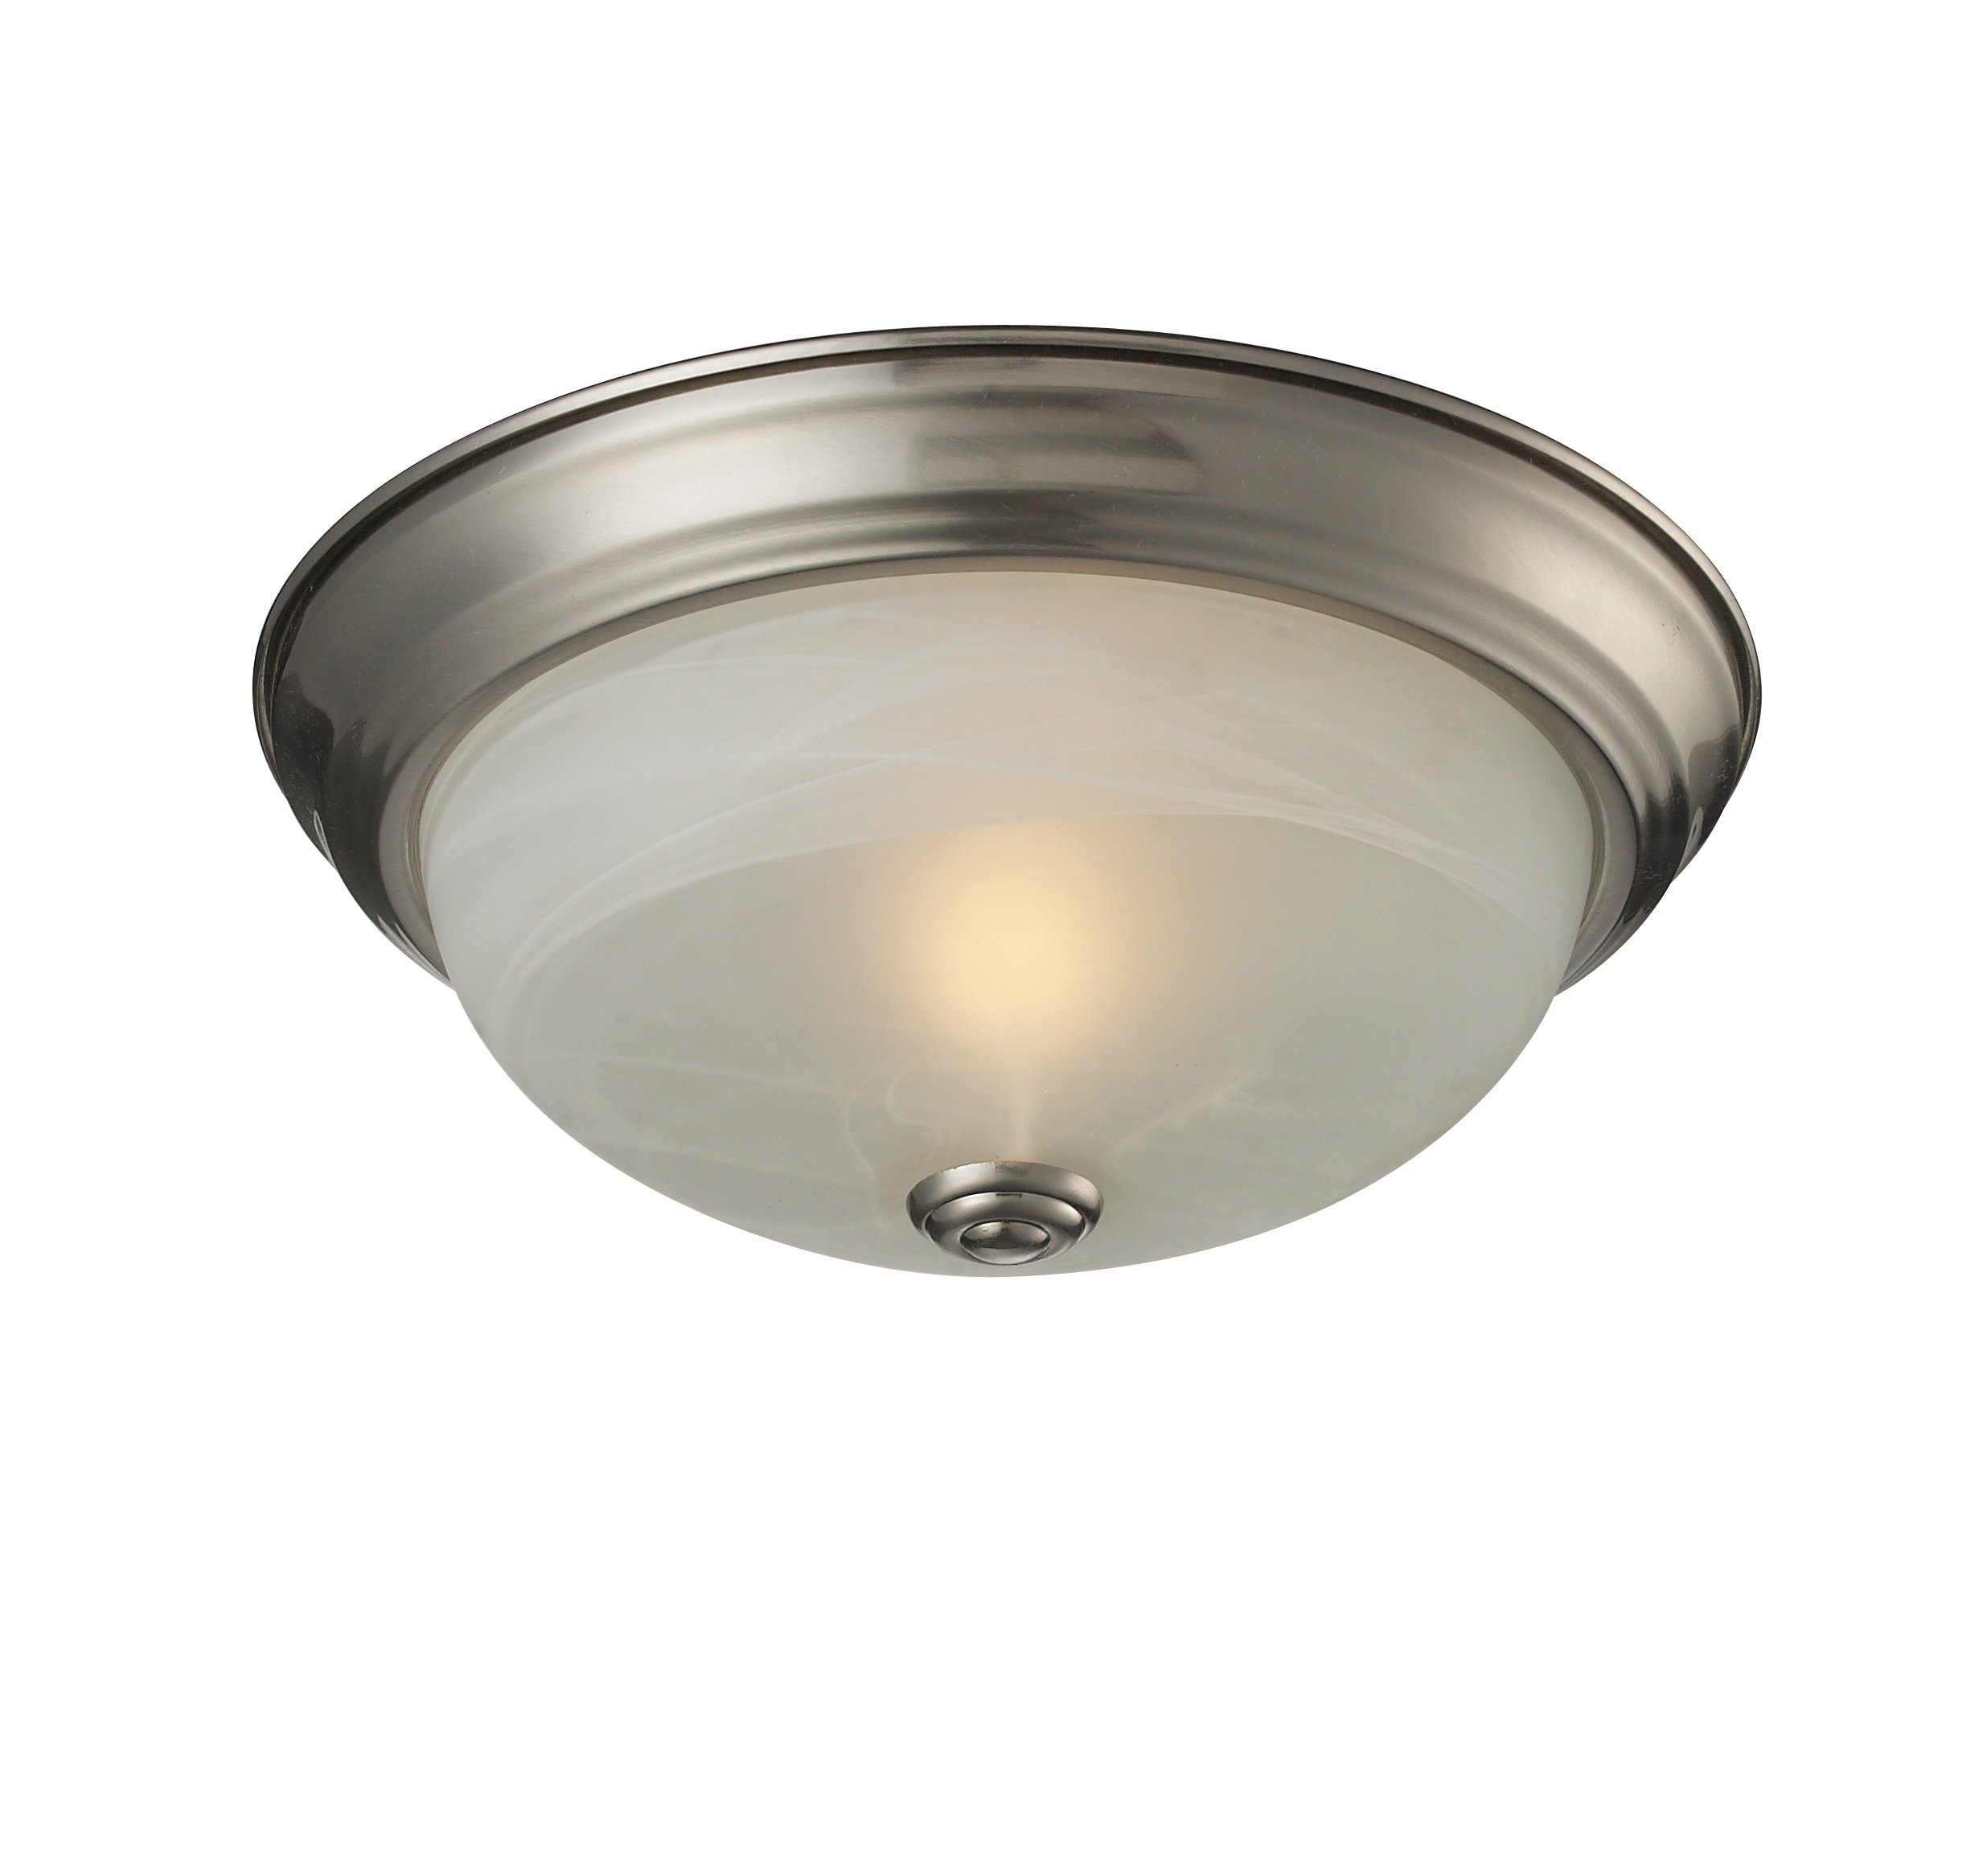 Z-Lite 2110F1 Athena One light ceiling, Steel Frame, Brushed nickel Finish and White Swirl Shade of Glass Material